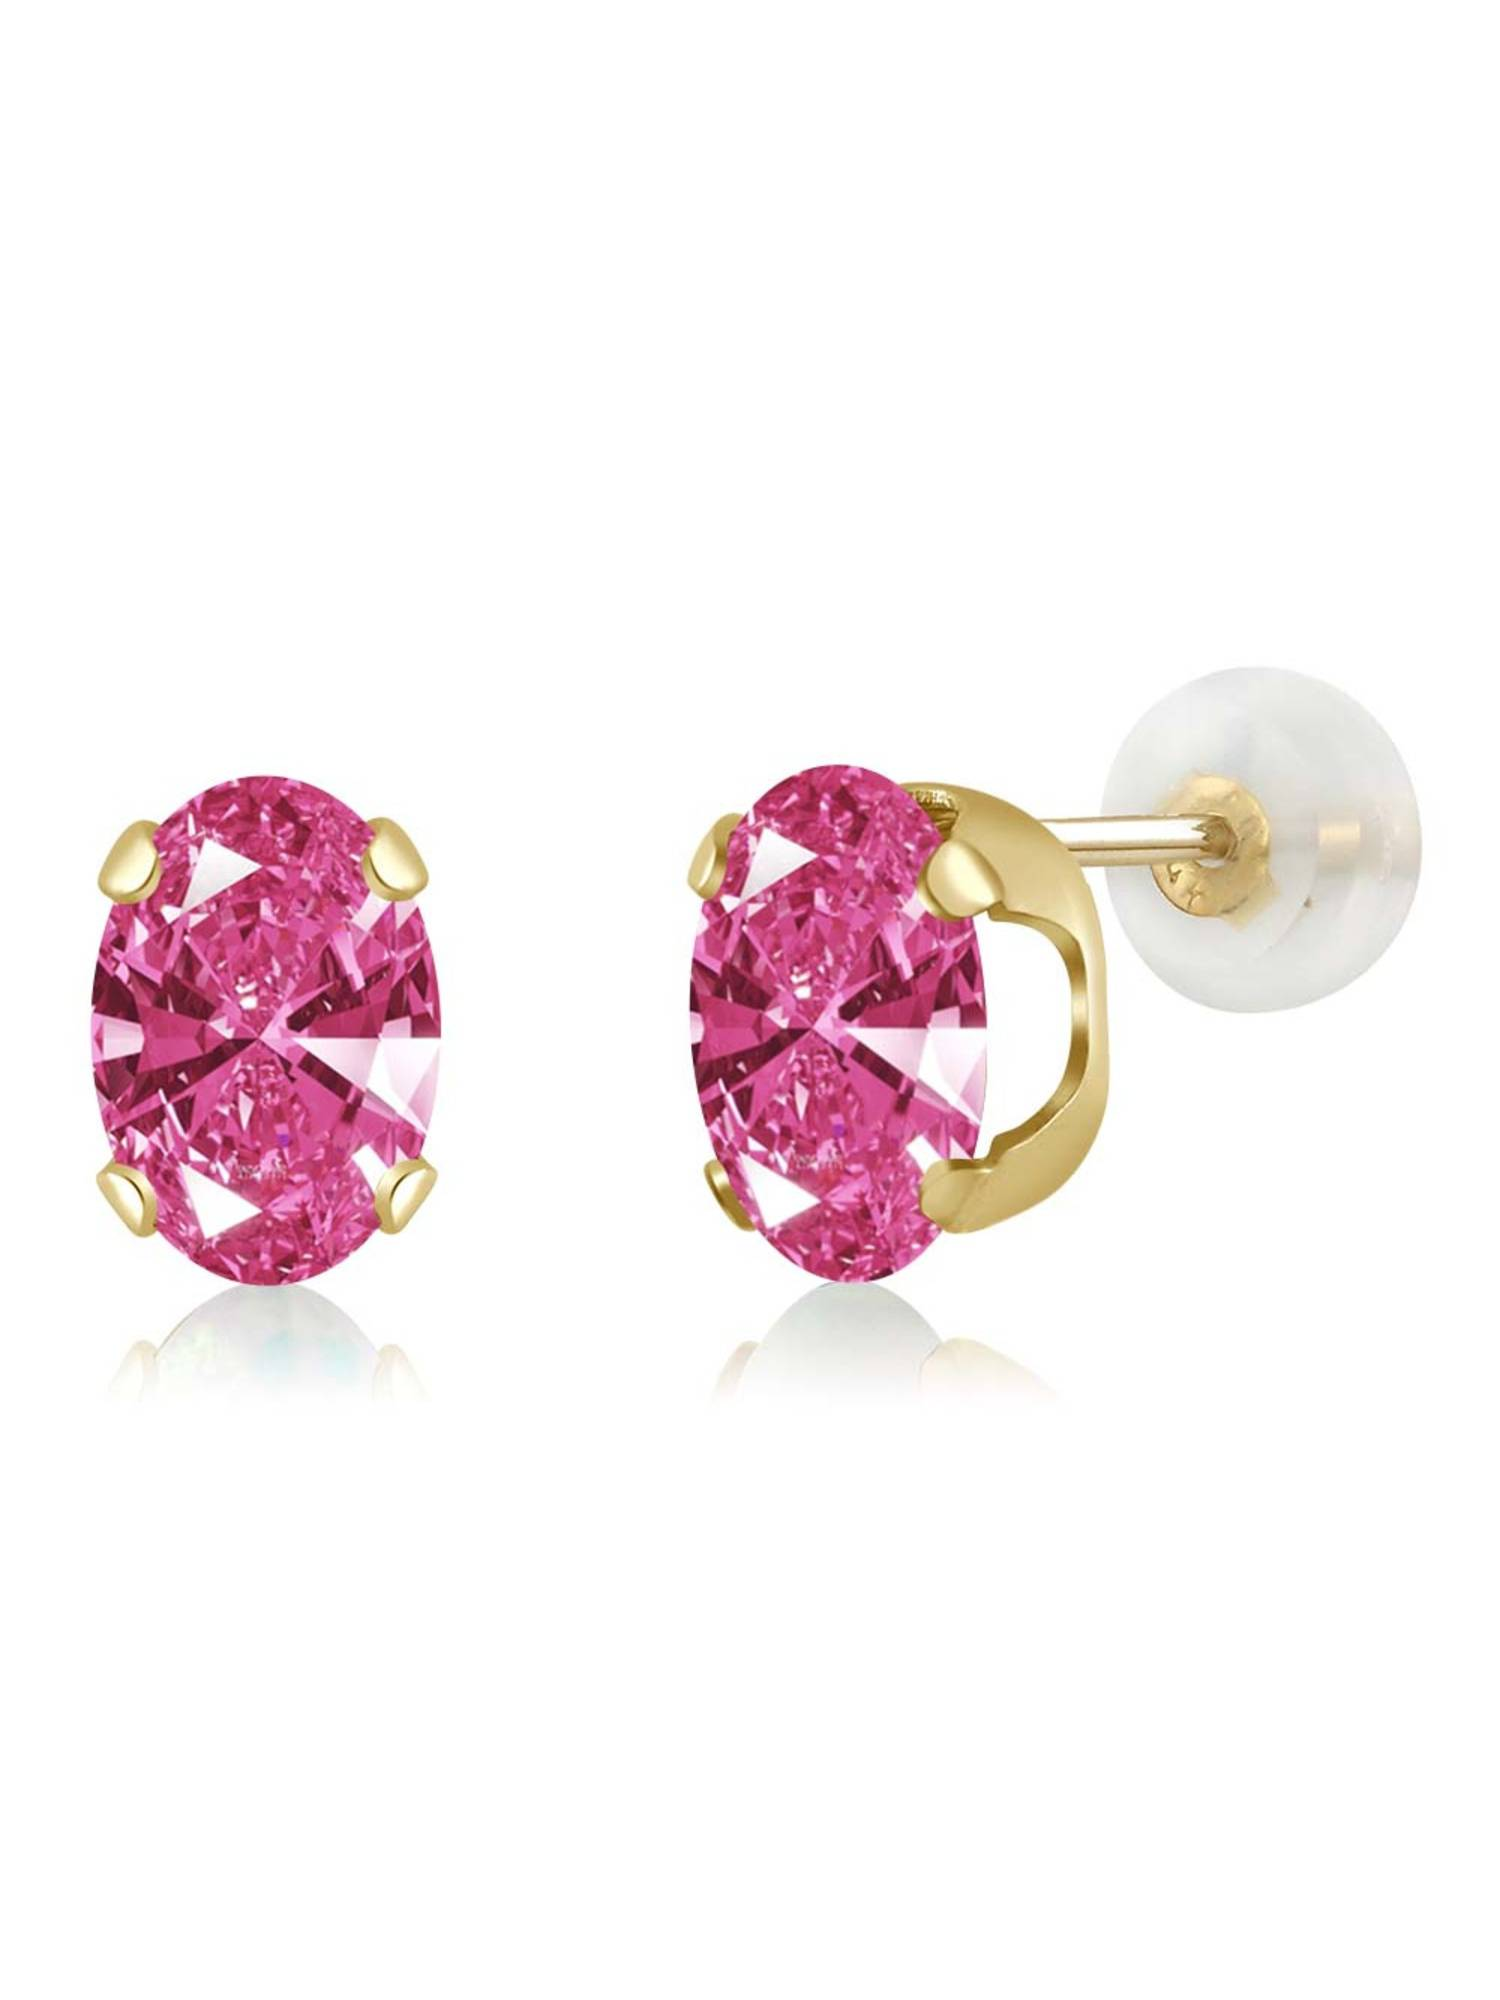 1.52 Ct Pink 14K Yellow Gold Earrings Made With Swarovski Zirconia by